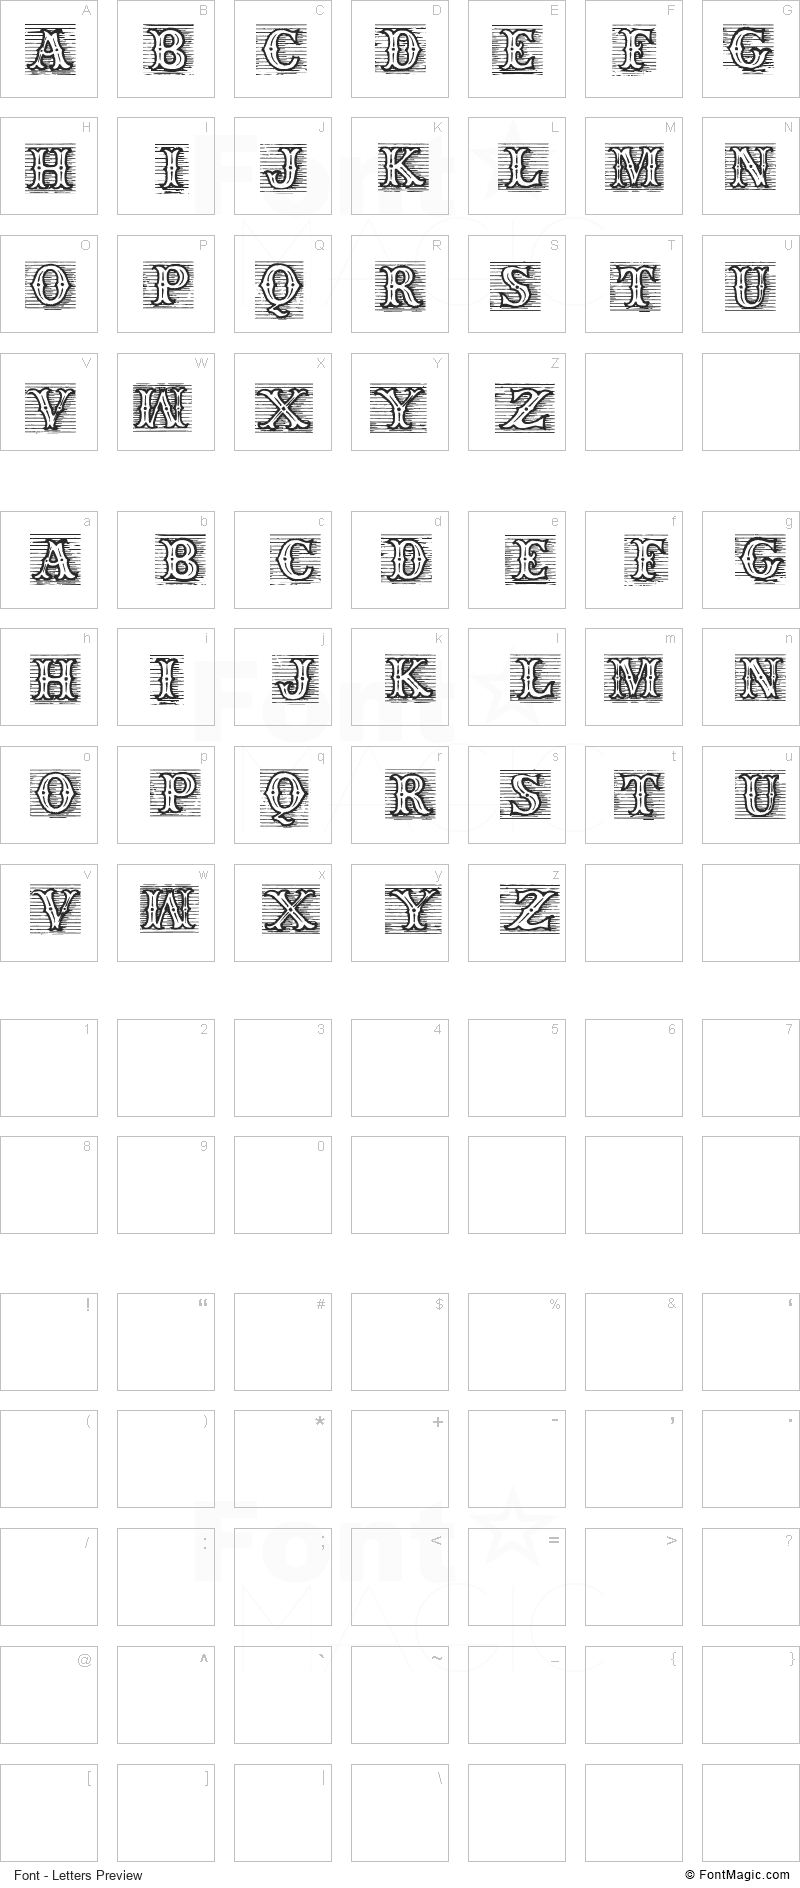 TagWood Font - All Latters Preview Chart